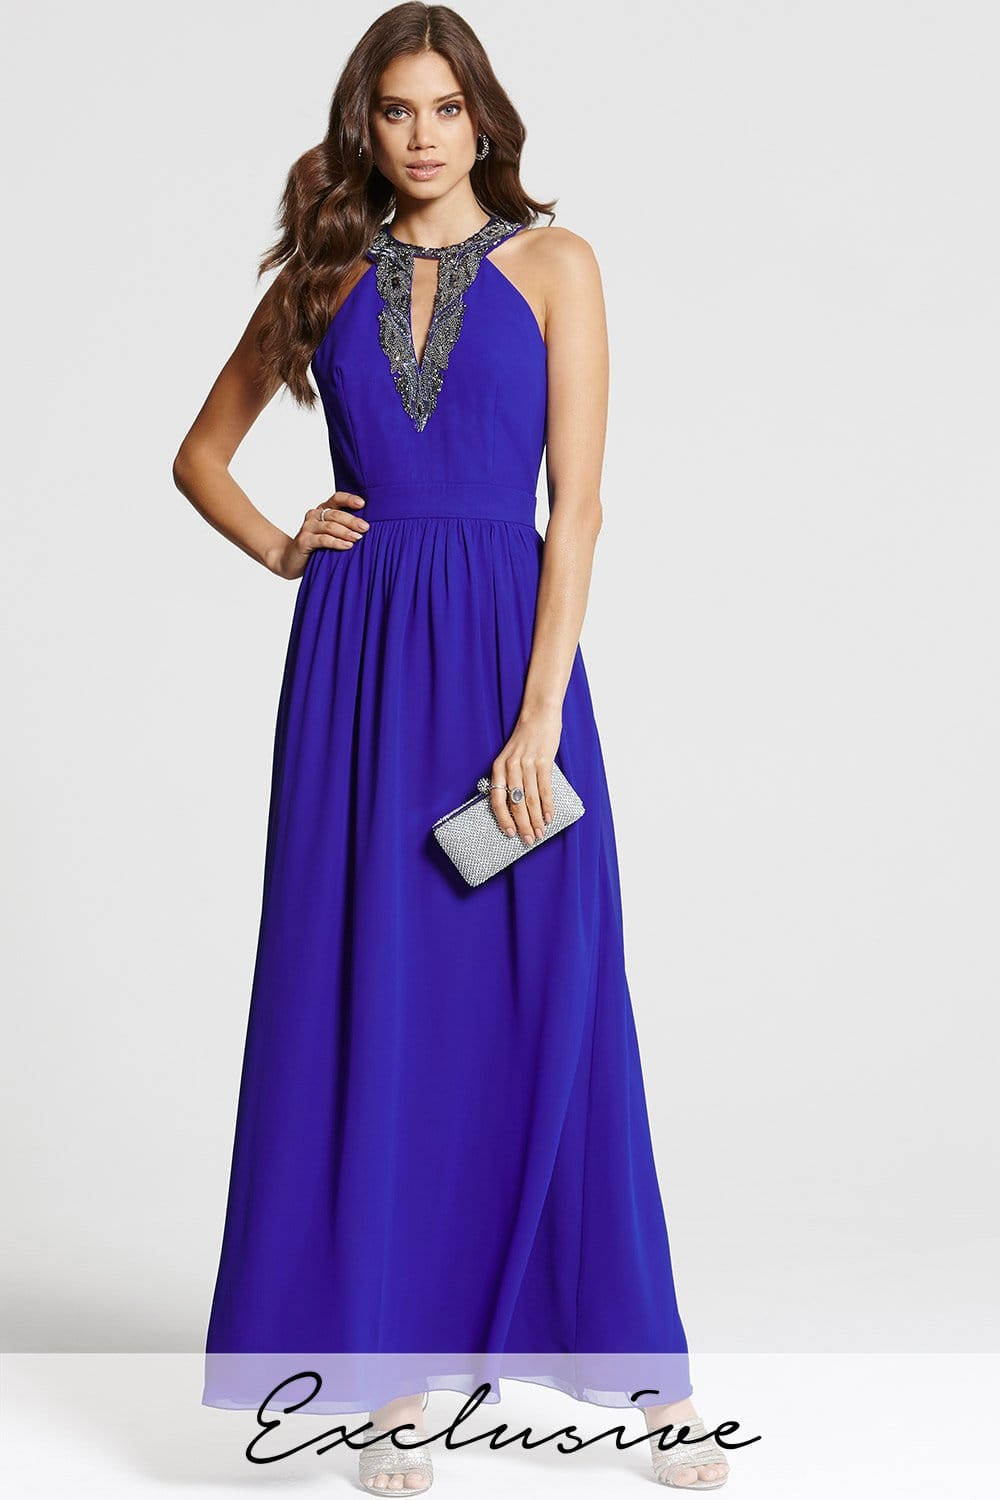 Cobalt Blue Embellished Maxi Dress From Little Mistress Uk